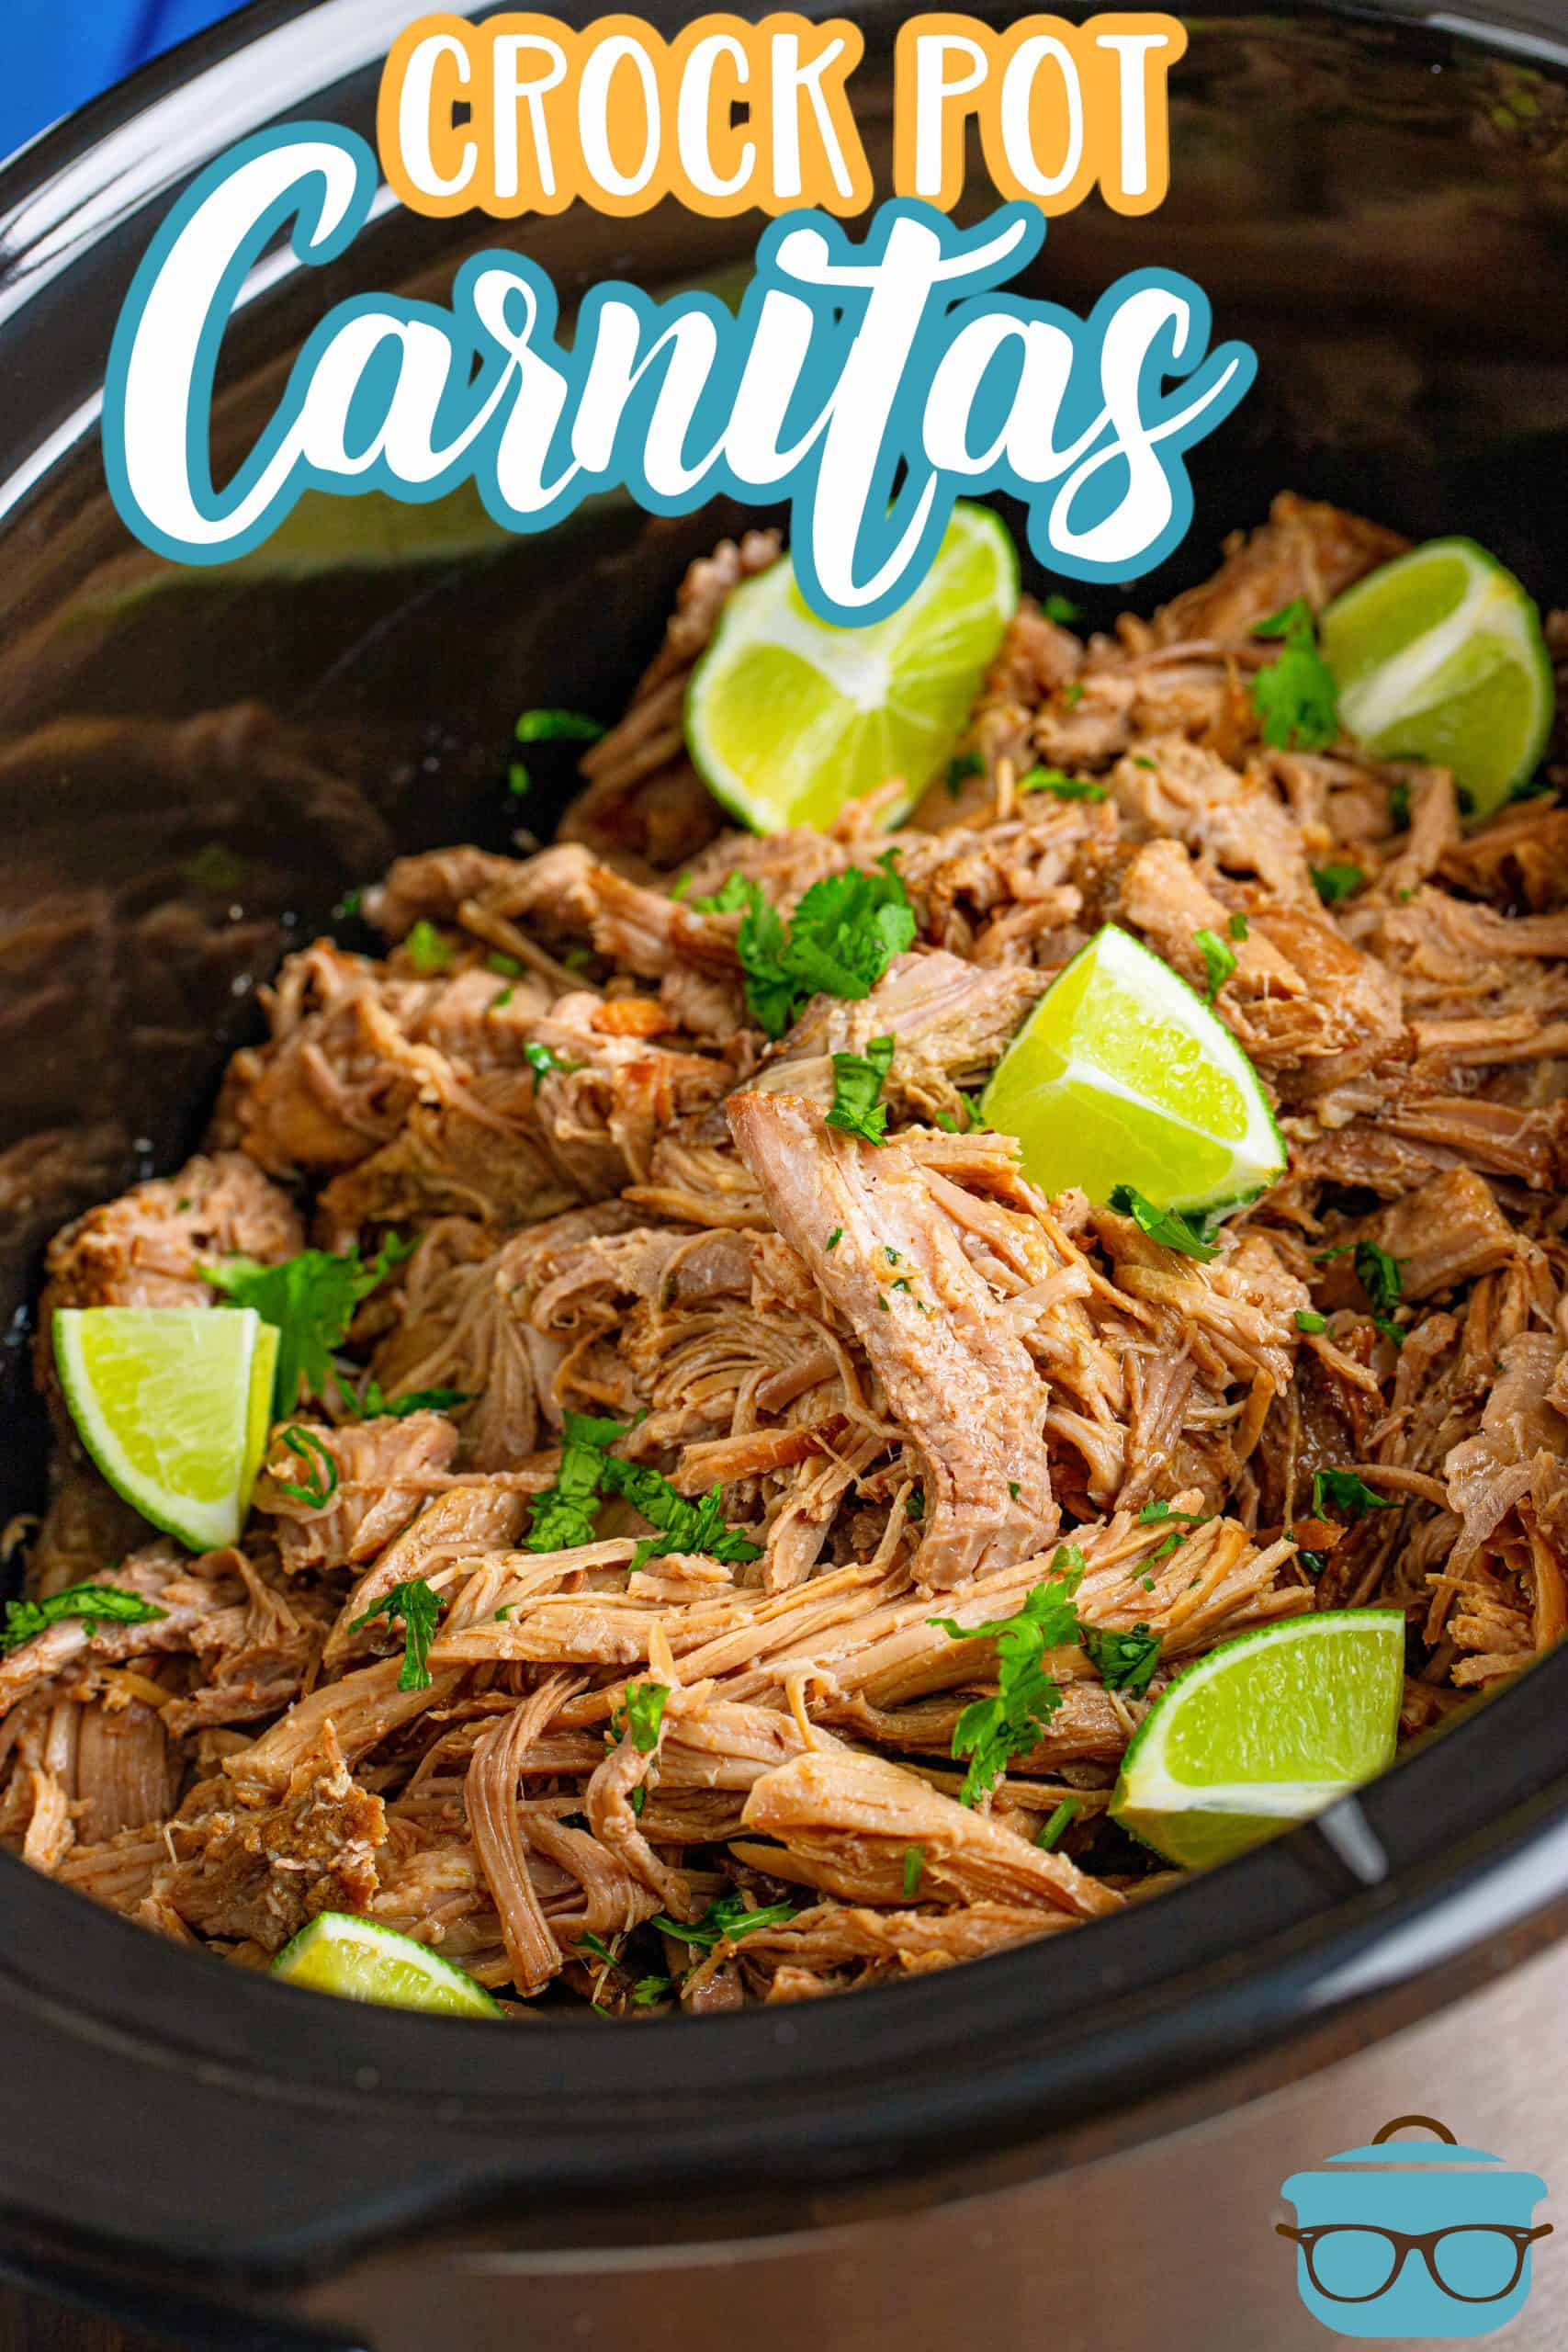 These Crock Pot Pork Carnitas only require a handful of ingredients and are full of flavor. Perfectly seasonedporkand a trick to help the meat stay tender with crispy edges!